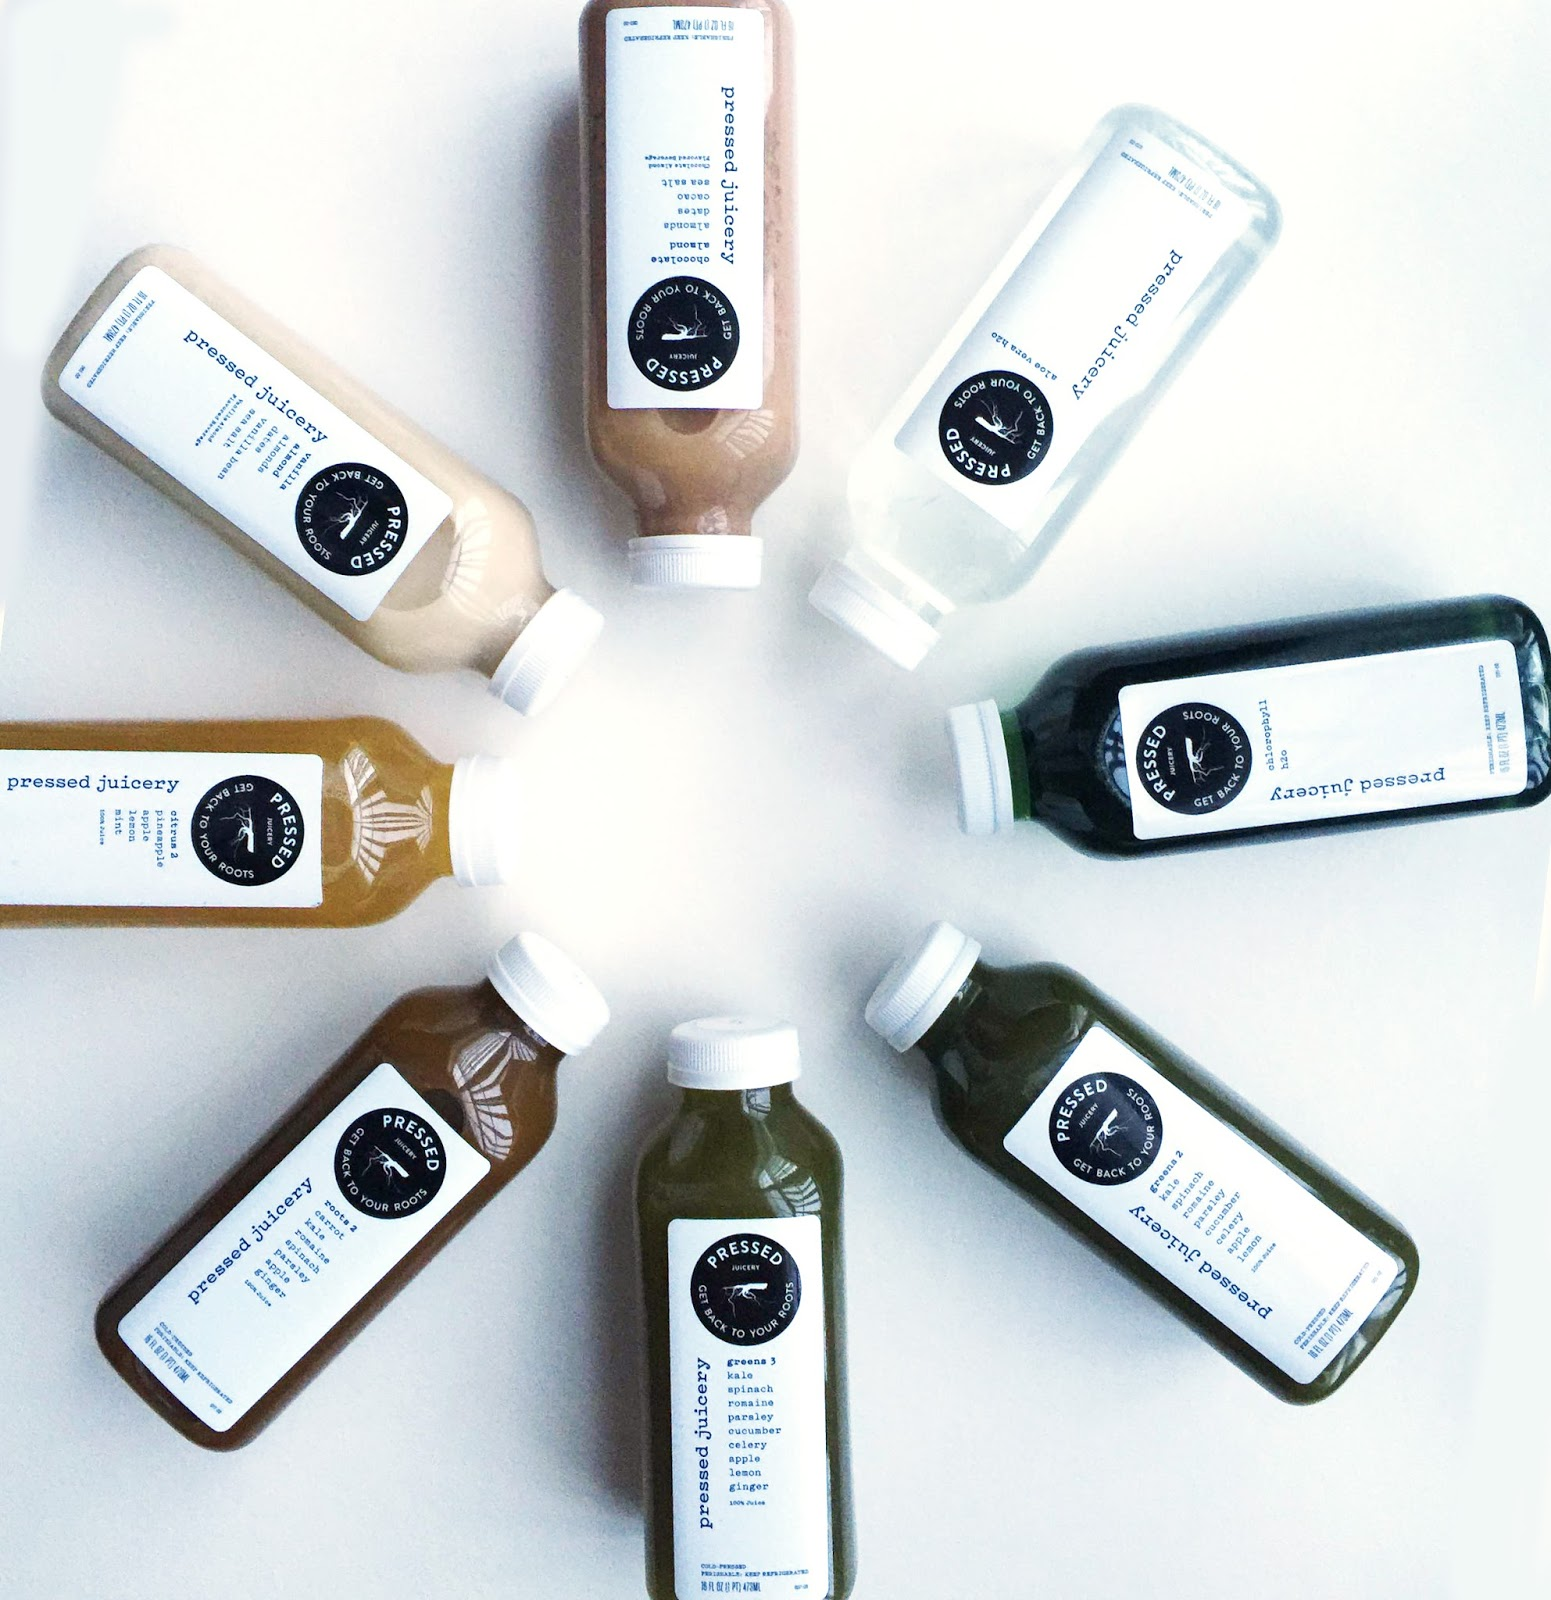 Cleansing with Pressed Juicery